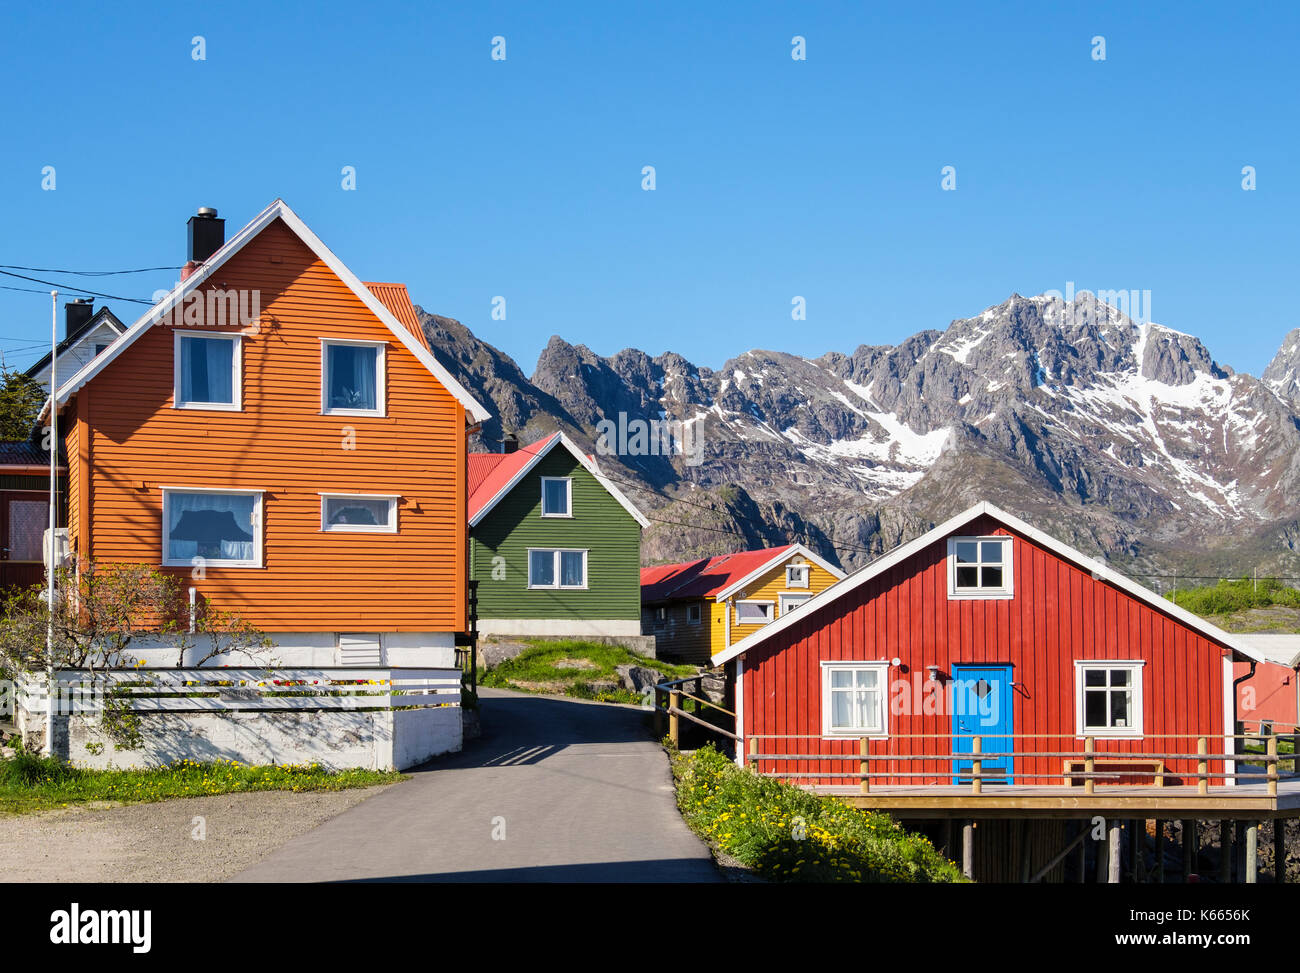 Typical colourful Norwegian architecture wooden houses in Henningsvaer, Austvågøya Island, Lofoten Islands, Nordland, Norway, Scandinavia - Stock Image